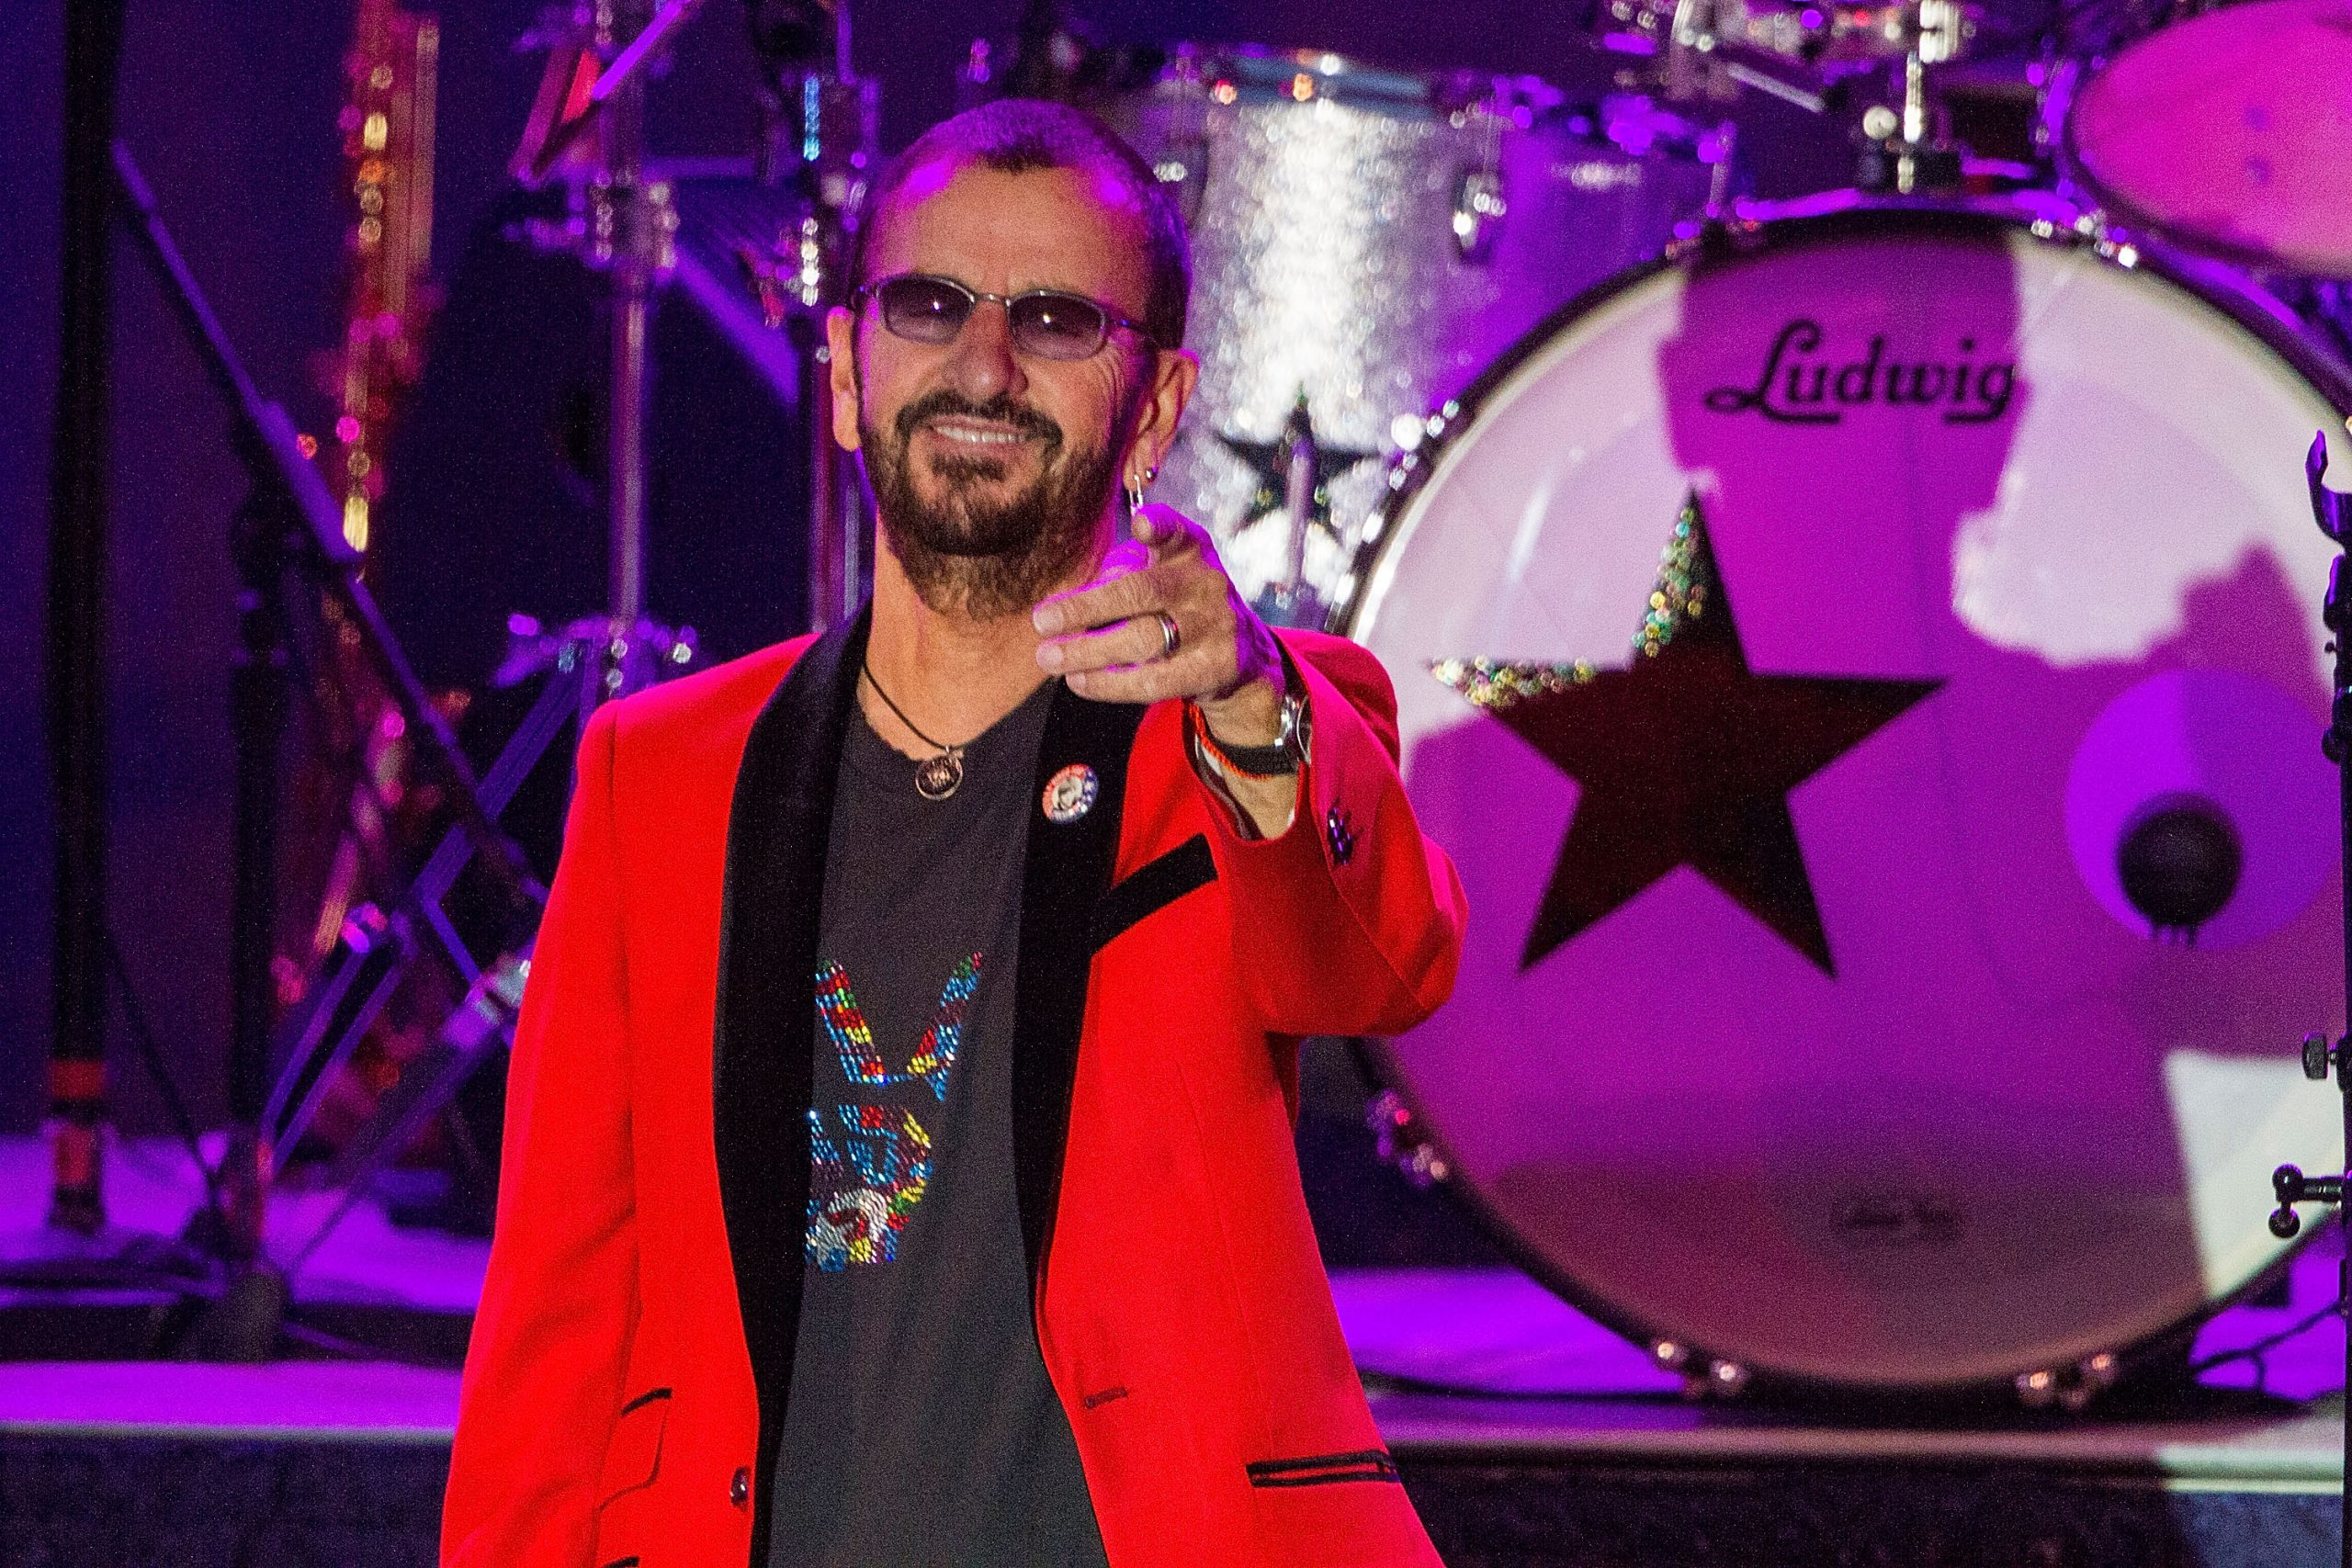 Ringo Starr wears a red jacket and T-shirt as he smiles and points out to the crowd from on stage in 2016.